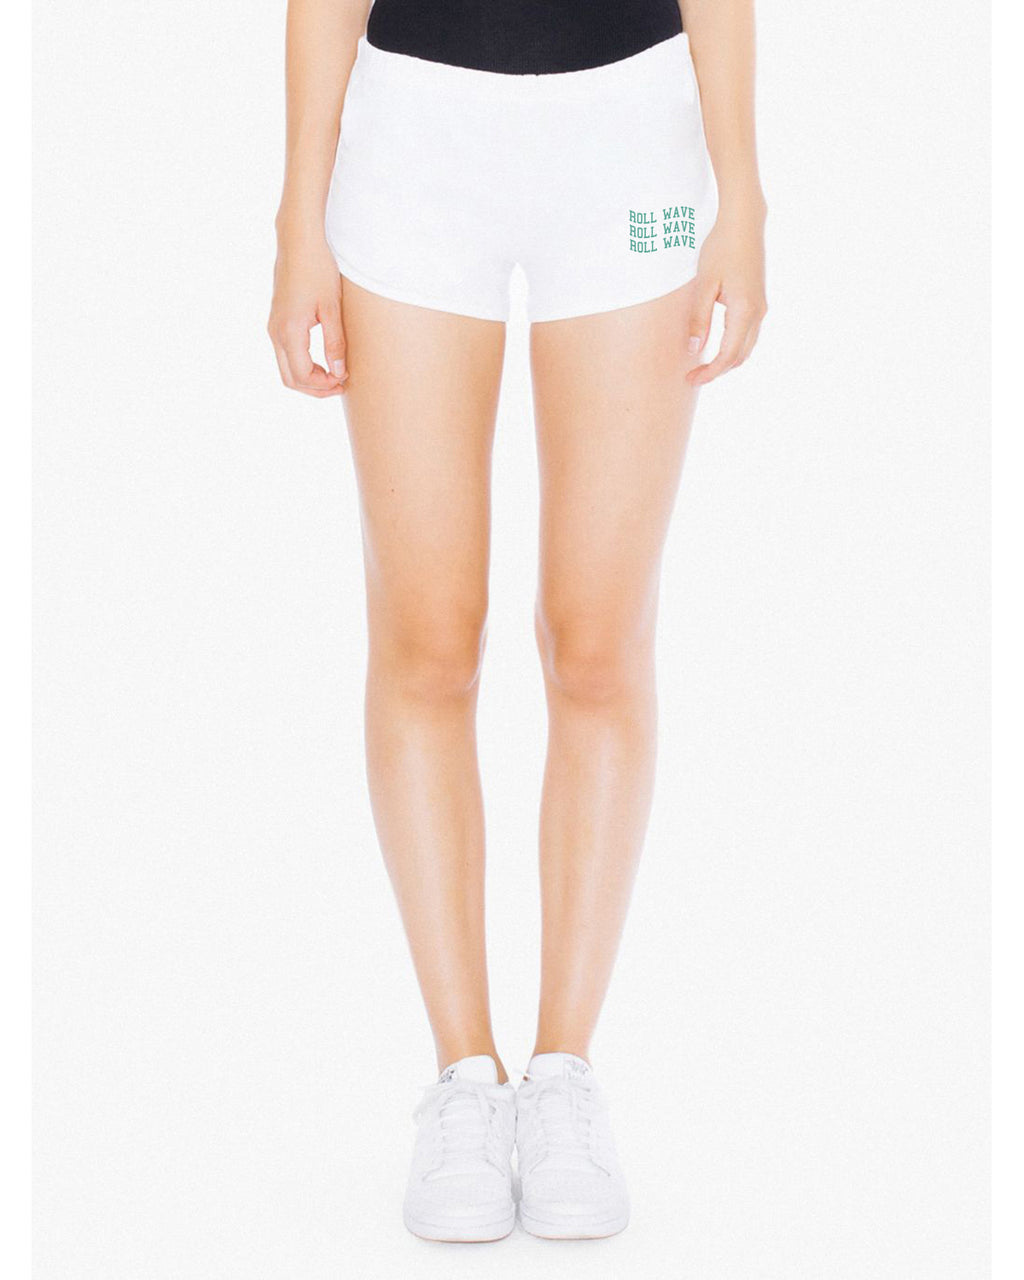 WAVY RETRO SHORTS - WHITE